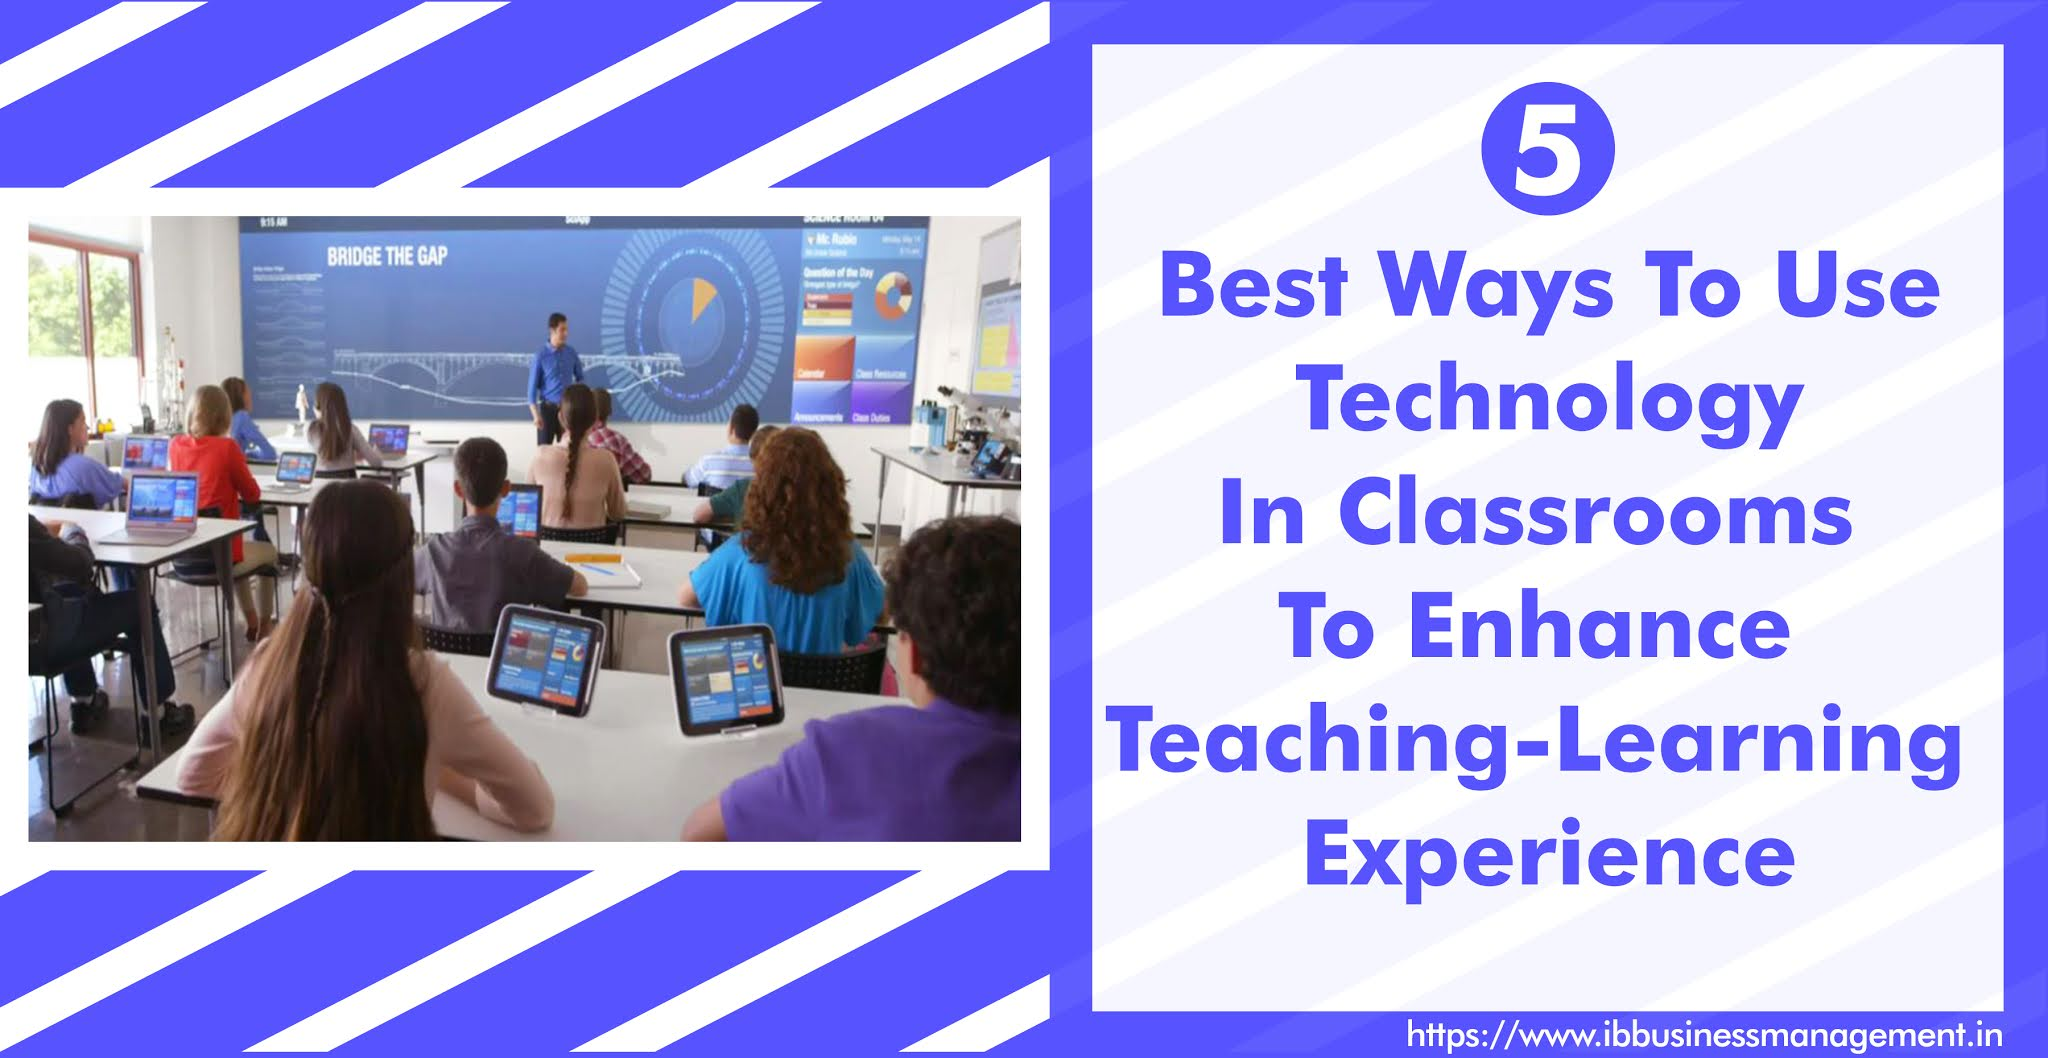 5 Best Ways To Use Technology in Classrooms To Enhance Teaching-Learning Experience